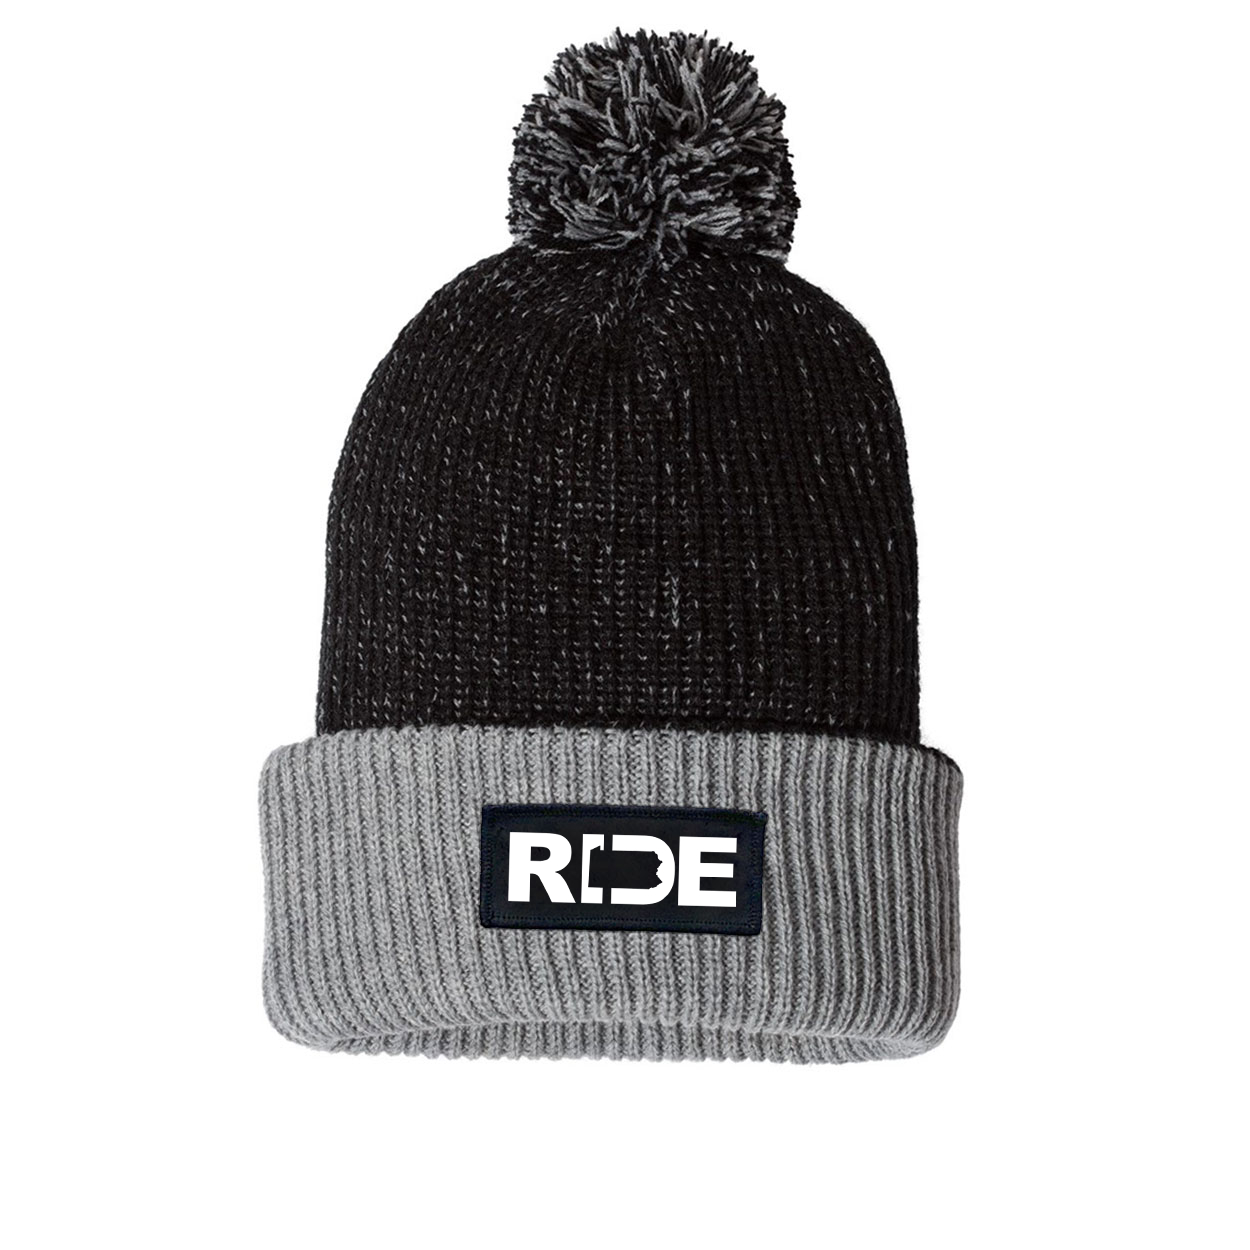 Ride Pennsylvania Night Out Woven Patch Roll Up Pom Knit Beanie Black/Gray (White Logo)